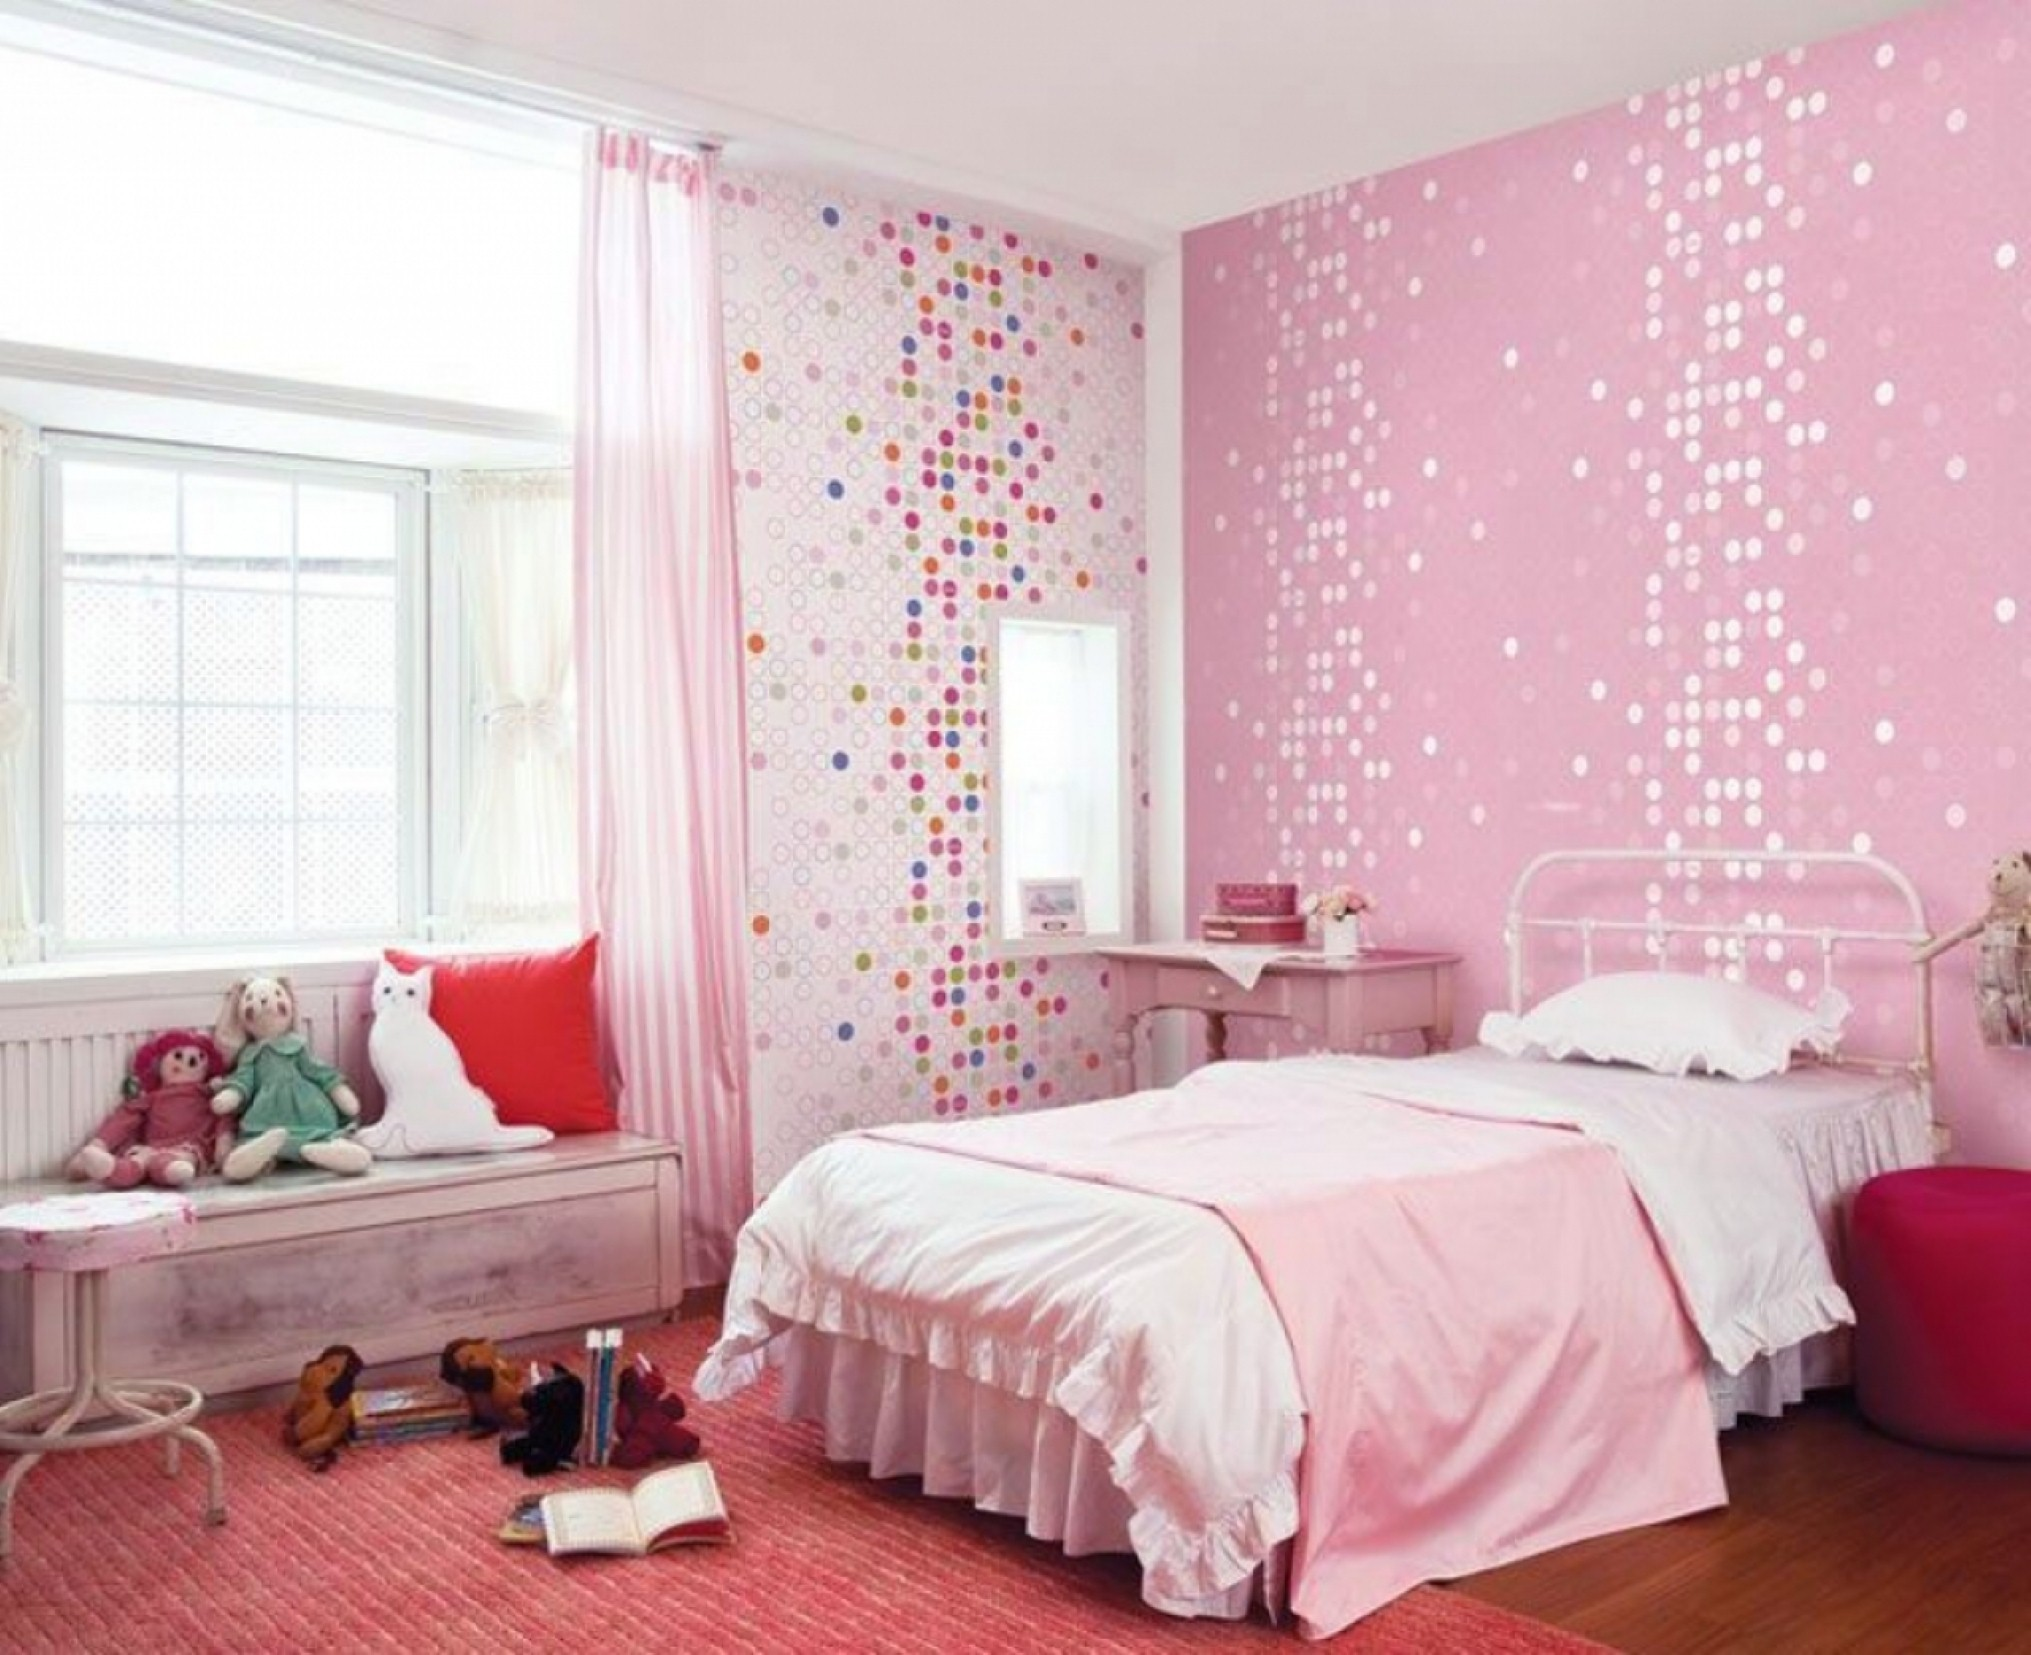 Bedroom Historic Pink Teenage Girls Room Interior Design With Windows Bay  Nook And Artistic Mosaic Wallpaper Red Rug Stylish Charm